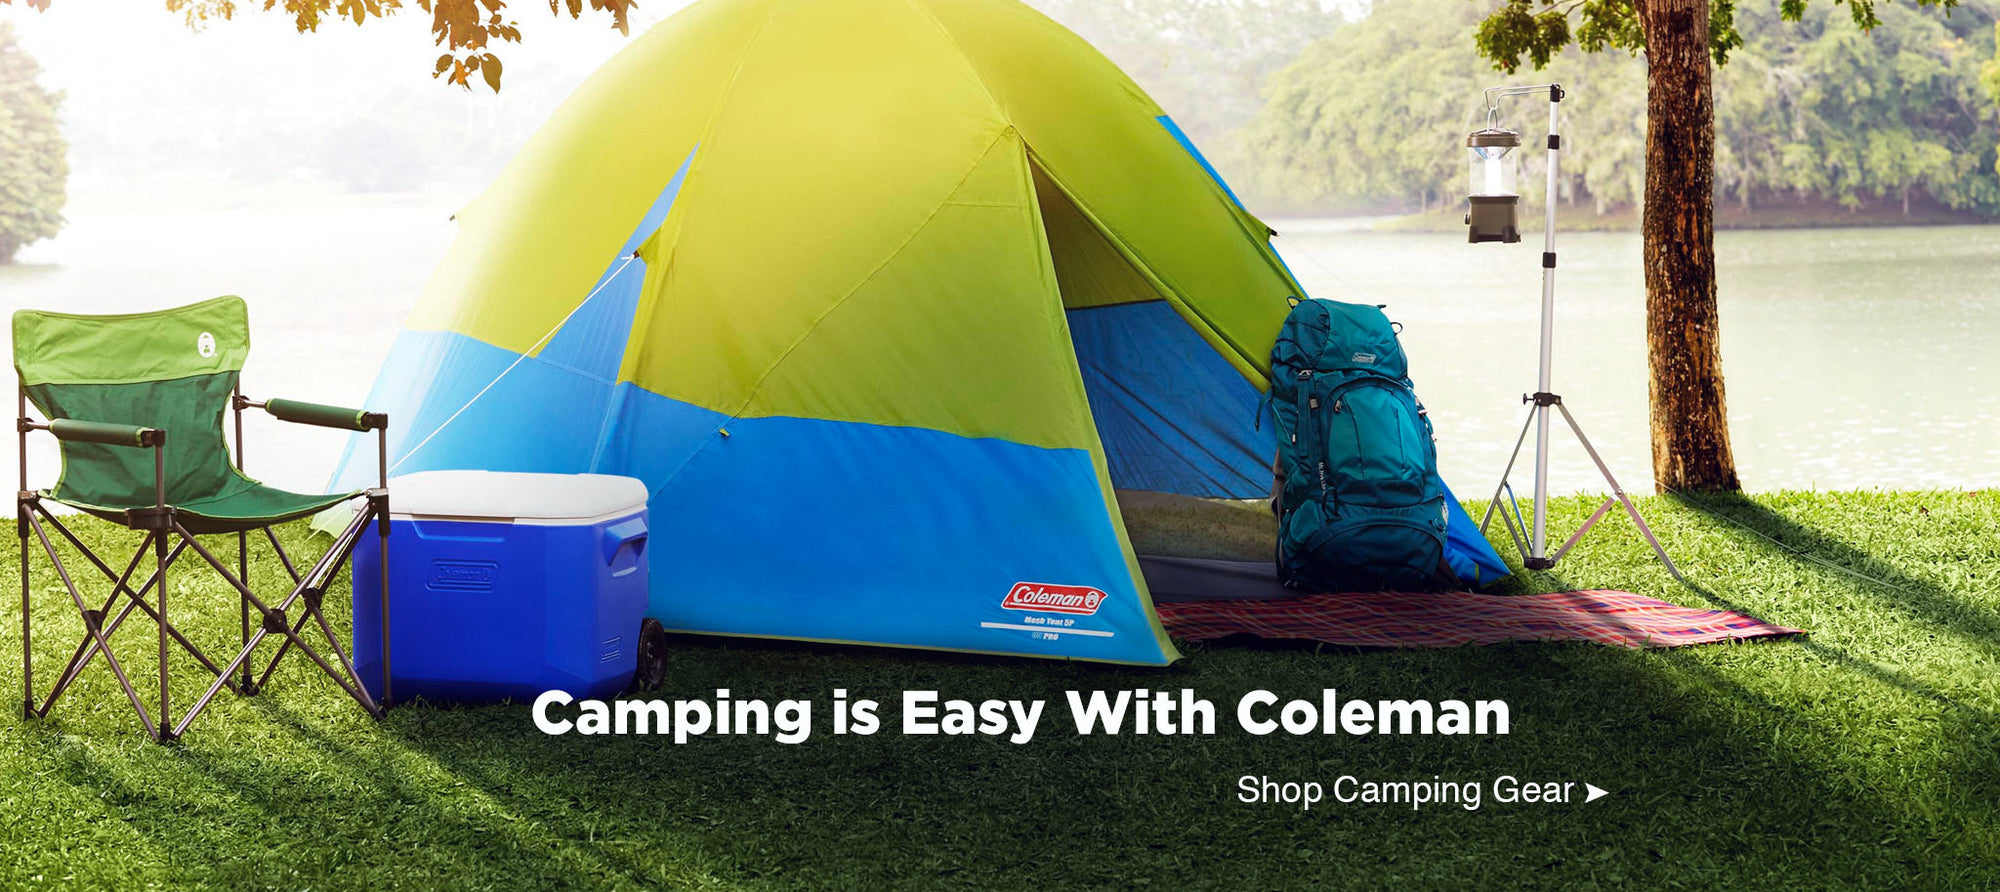 Your camping gear is waiting at Easy Plum